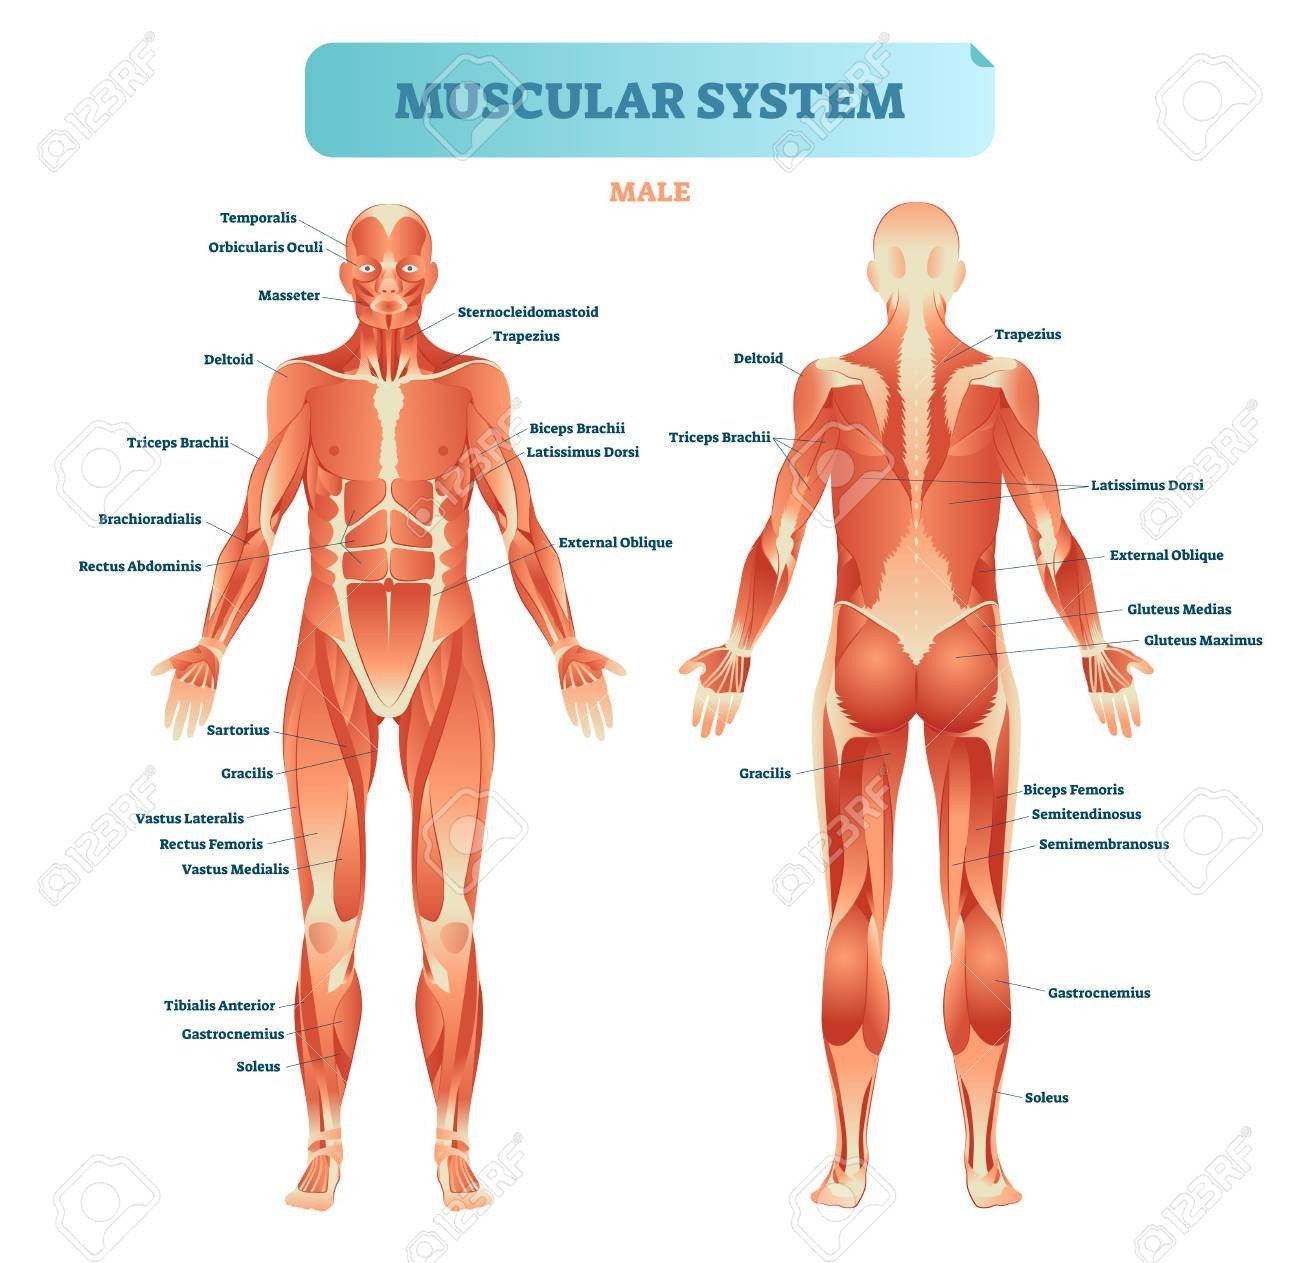 male muscular system full anatomical body diagram with muscle